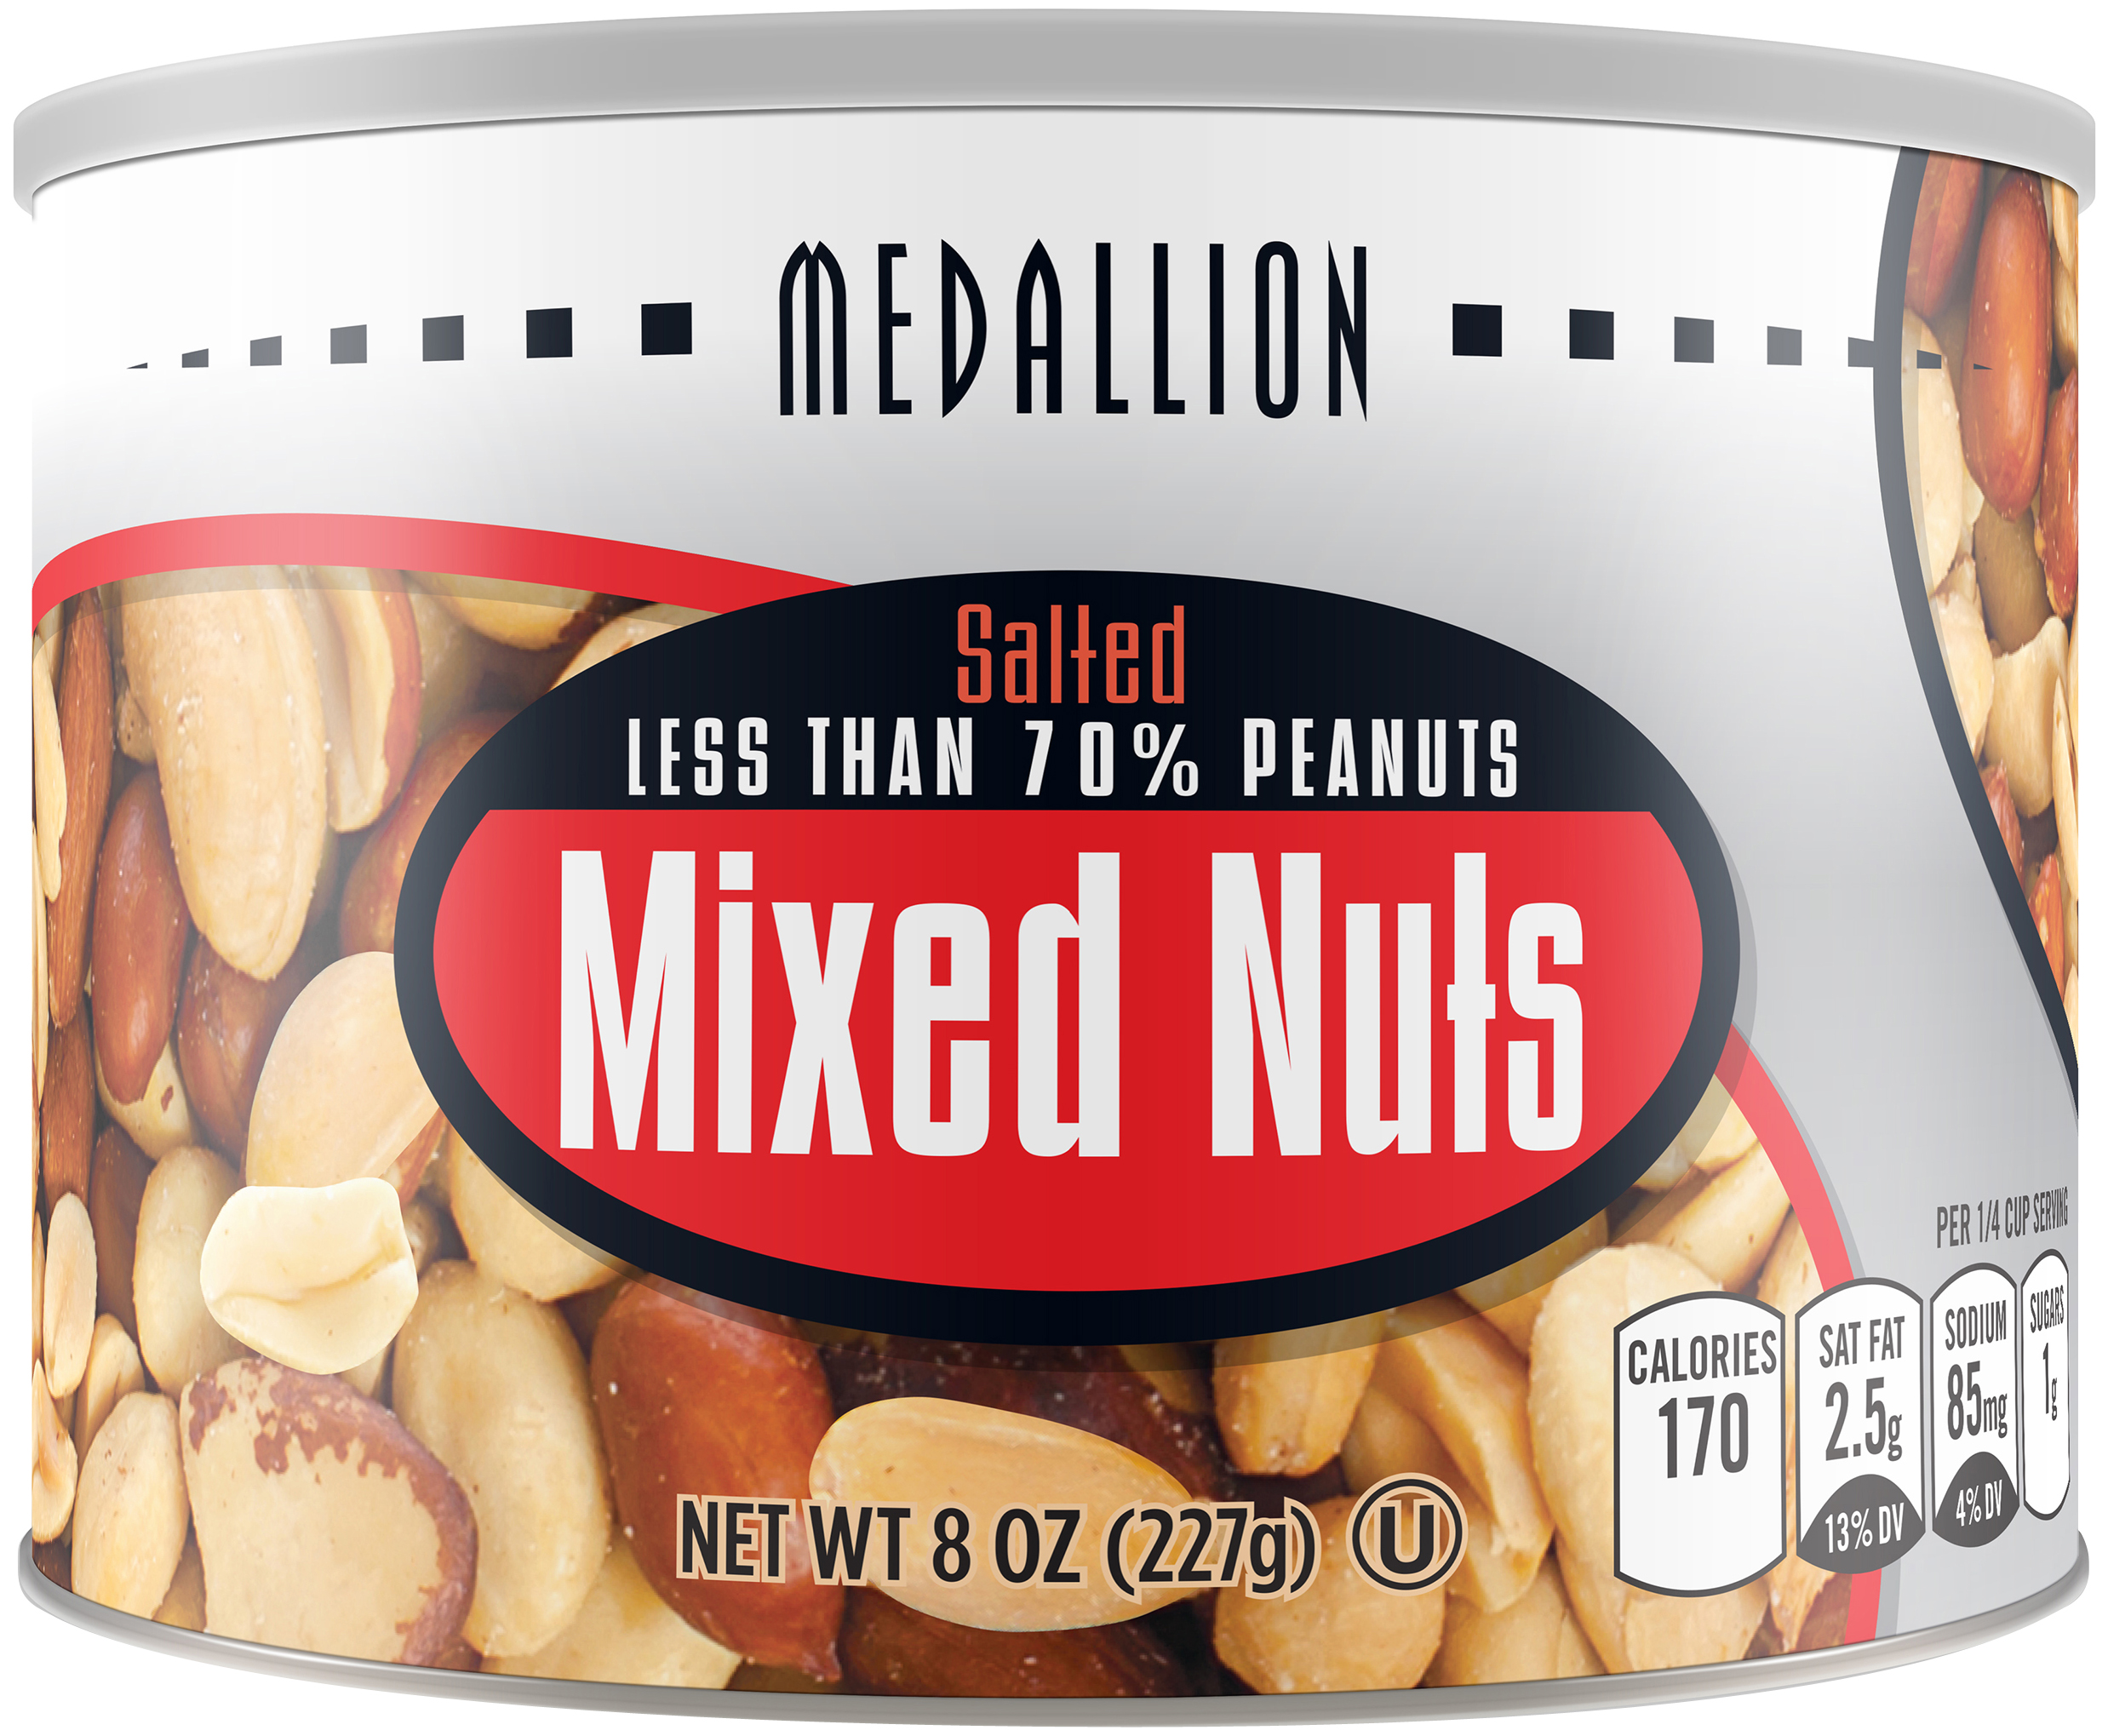 Medallion Salted Mixed Nuts, 8 oz by STAR SNACKS CO INC